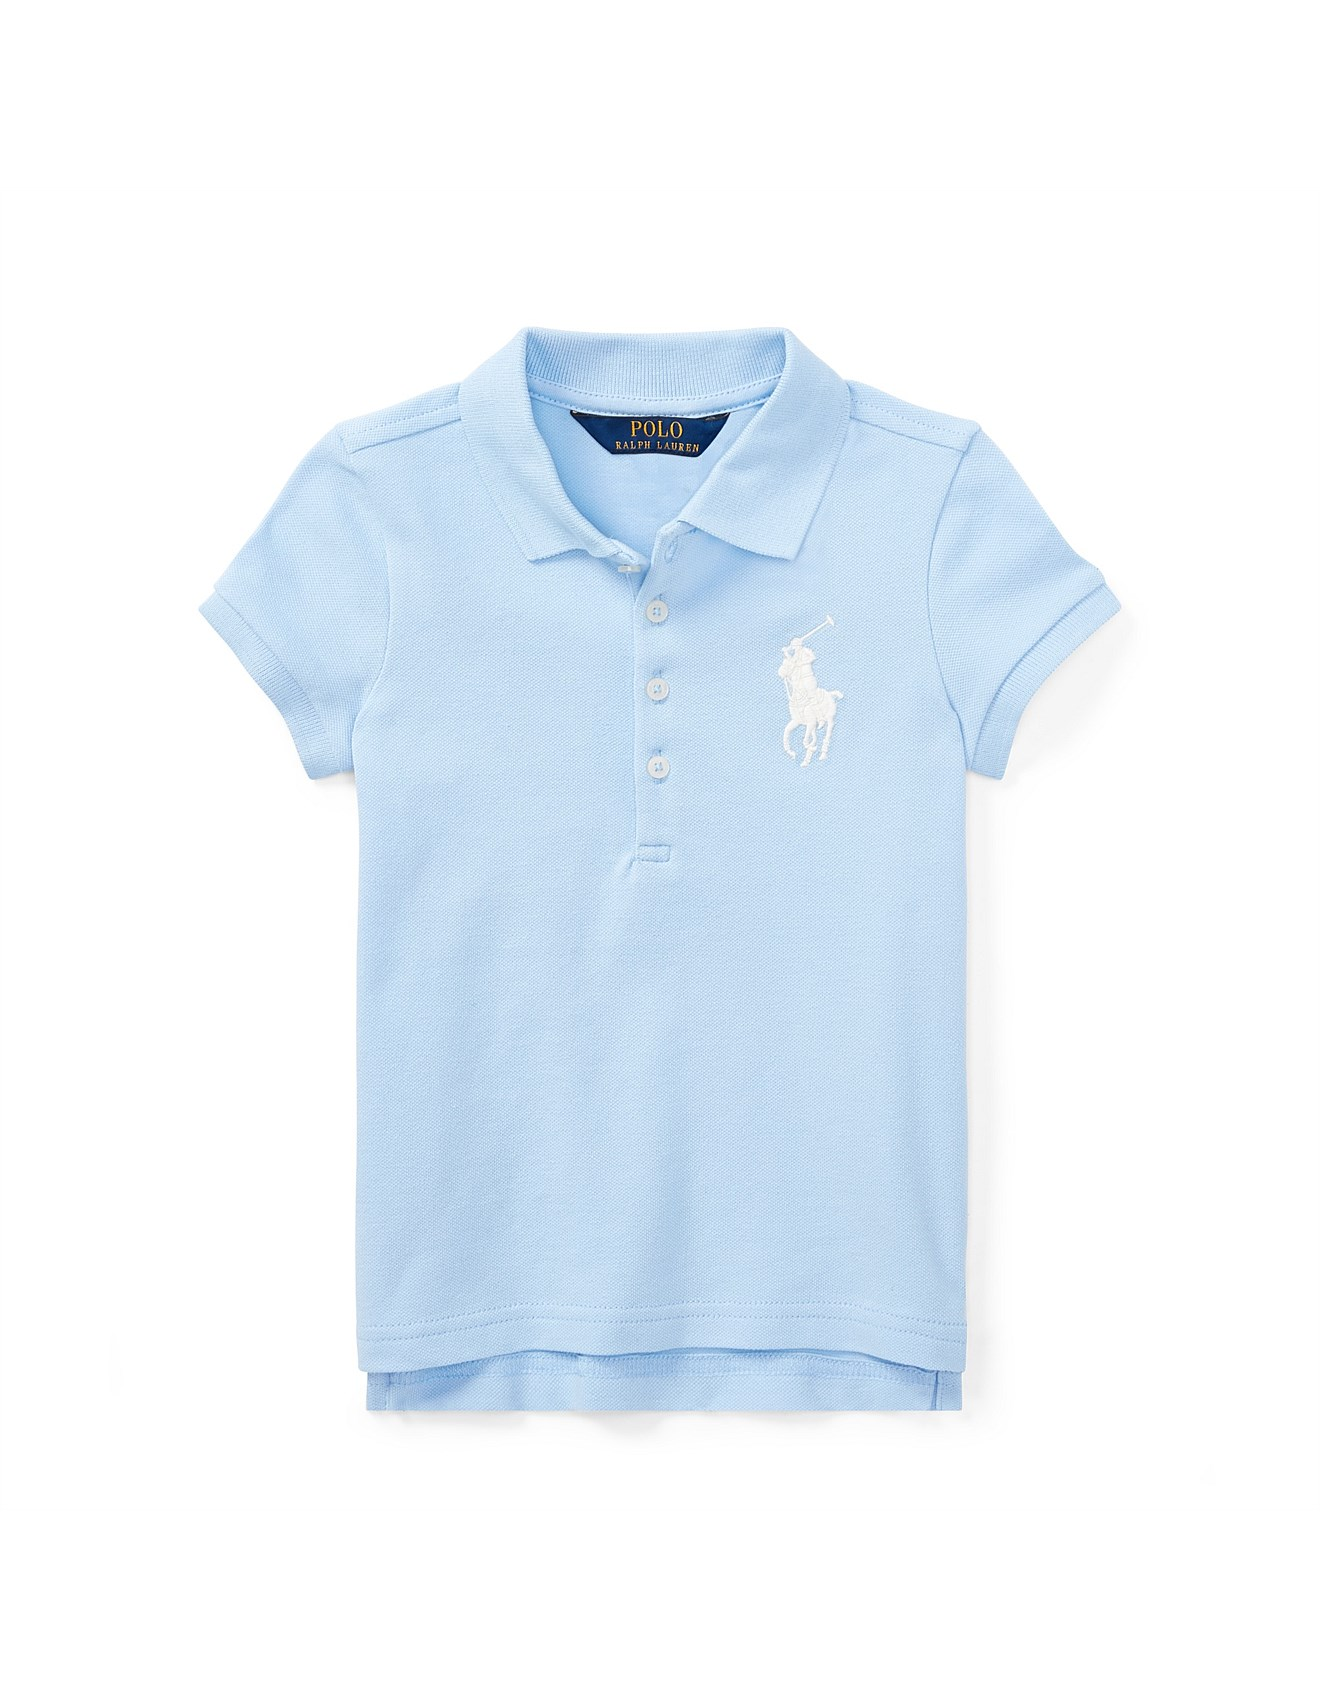 d9a11141581 Girl s Clothing